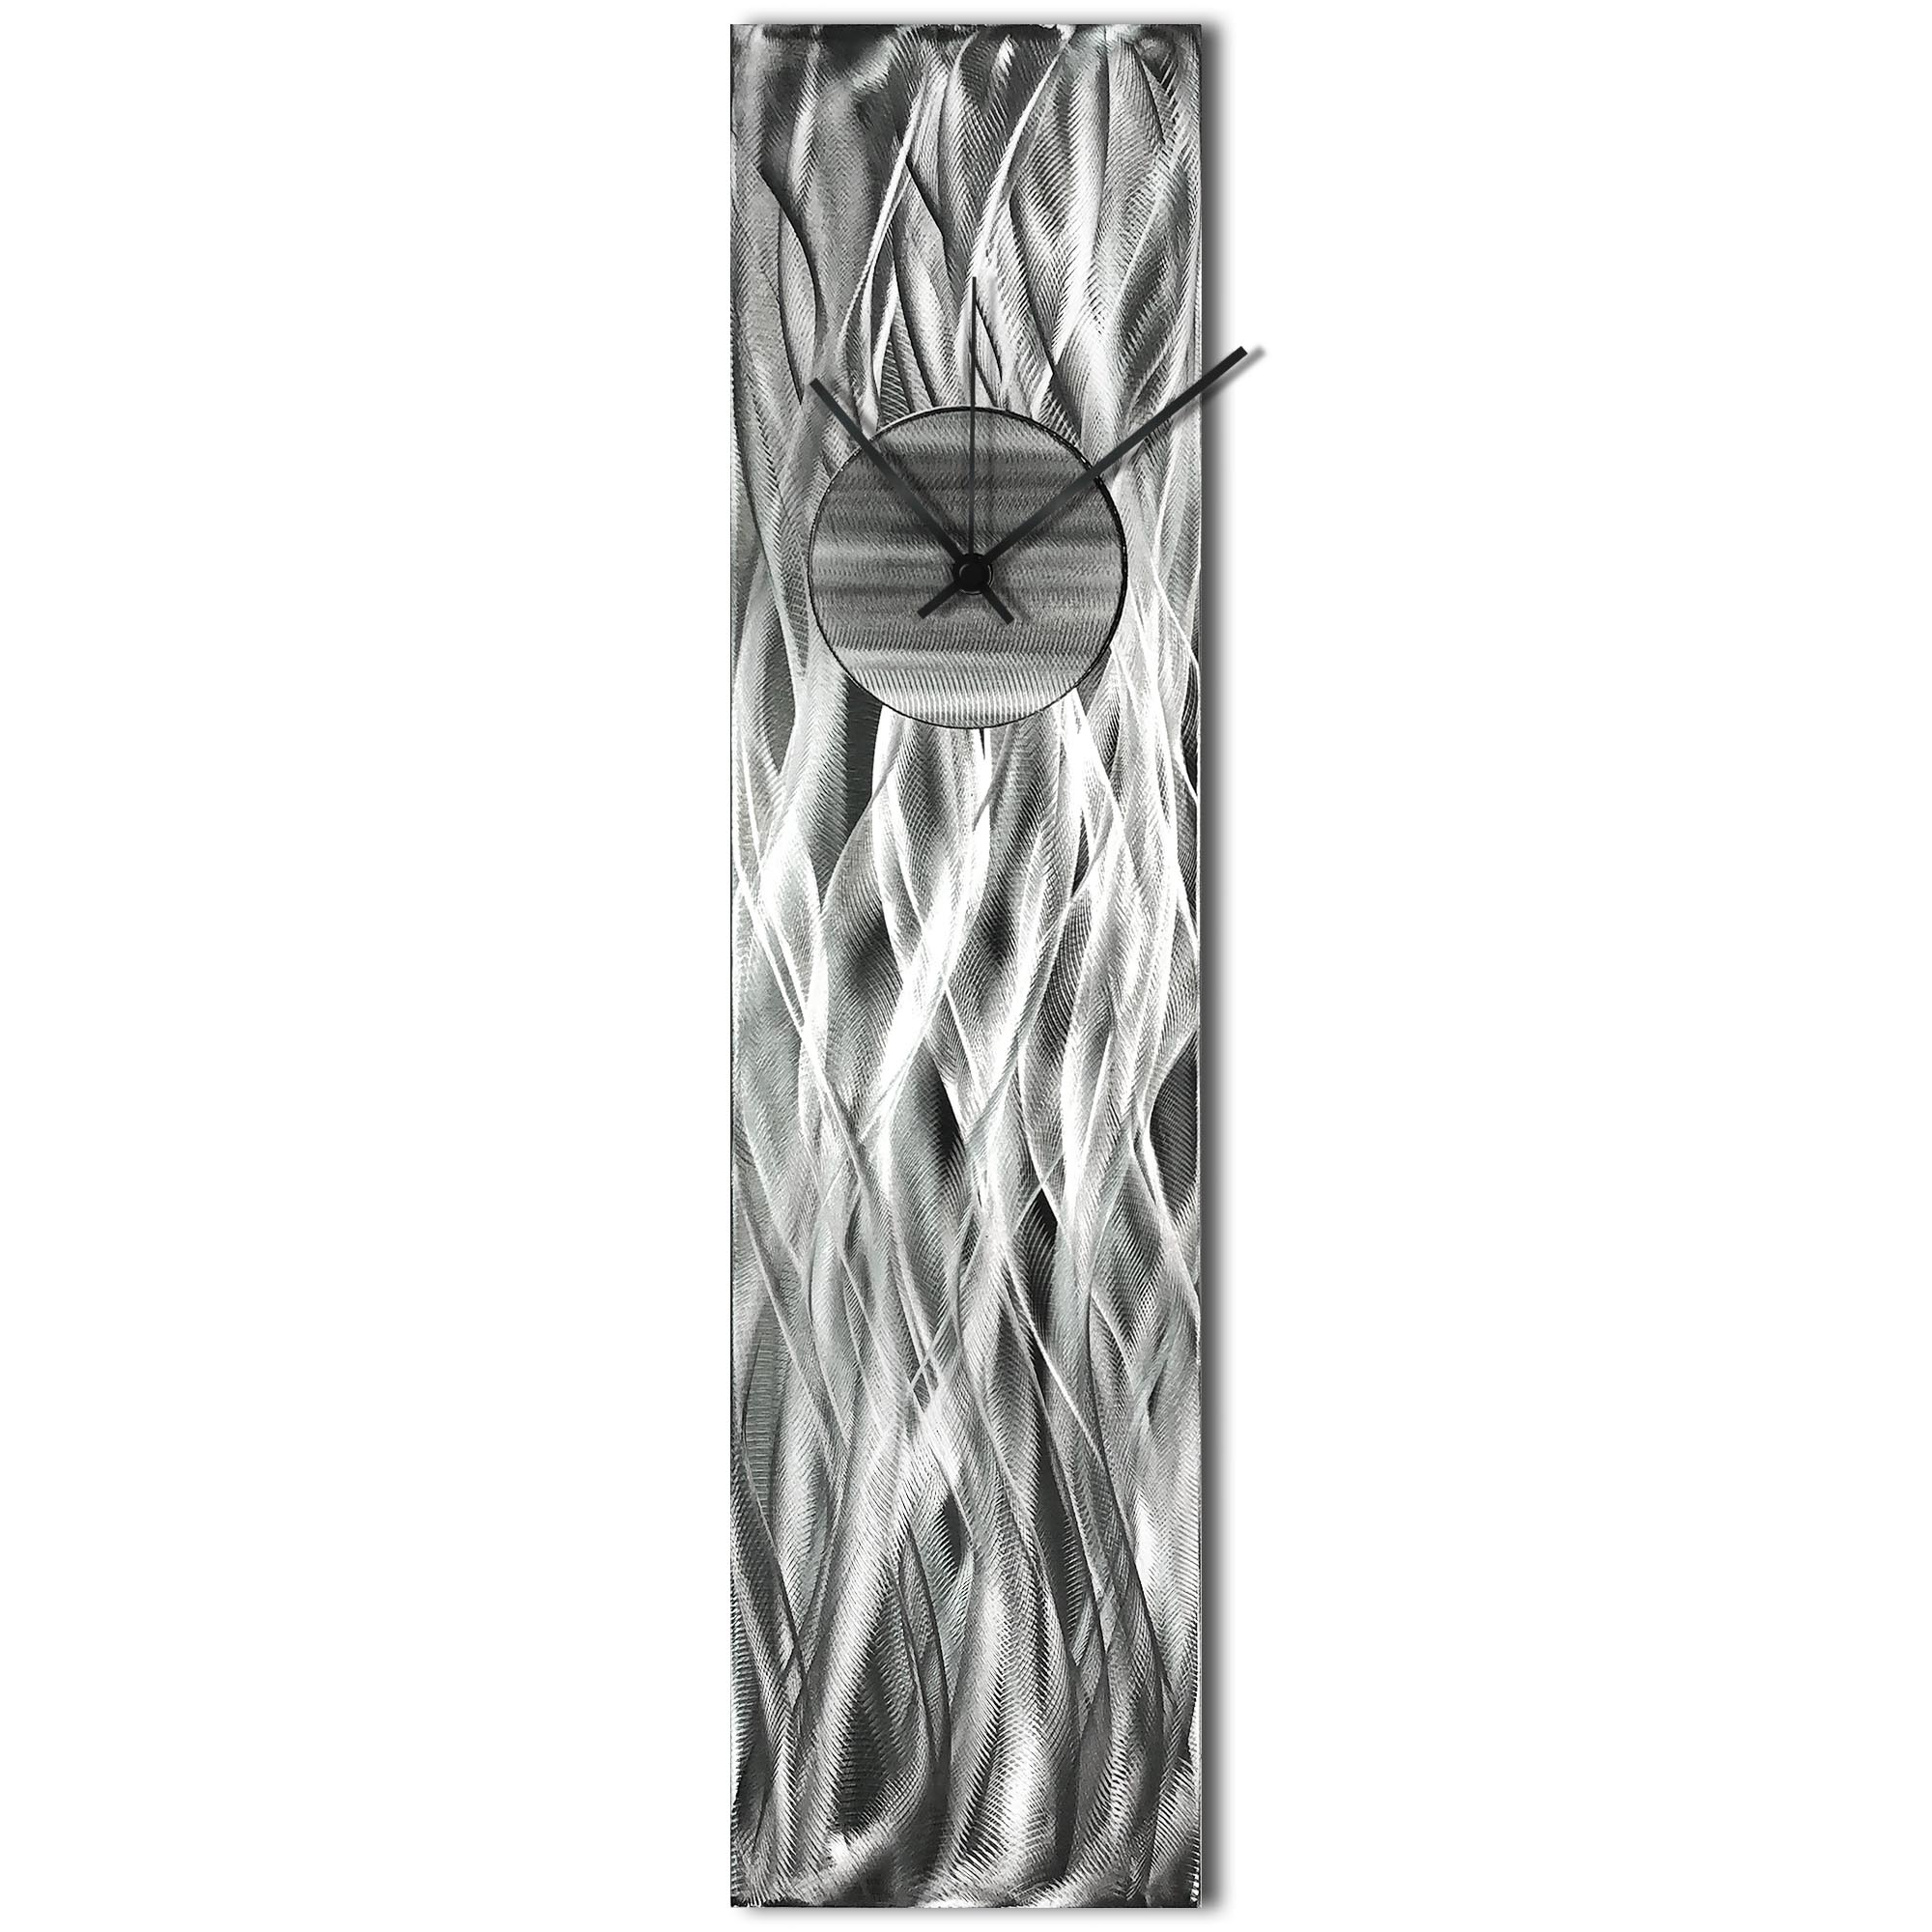 Helena Martin 'Waves Relief Clock Silver' 6in x 24in Modern Wall Clock on Ground and Painted Metal